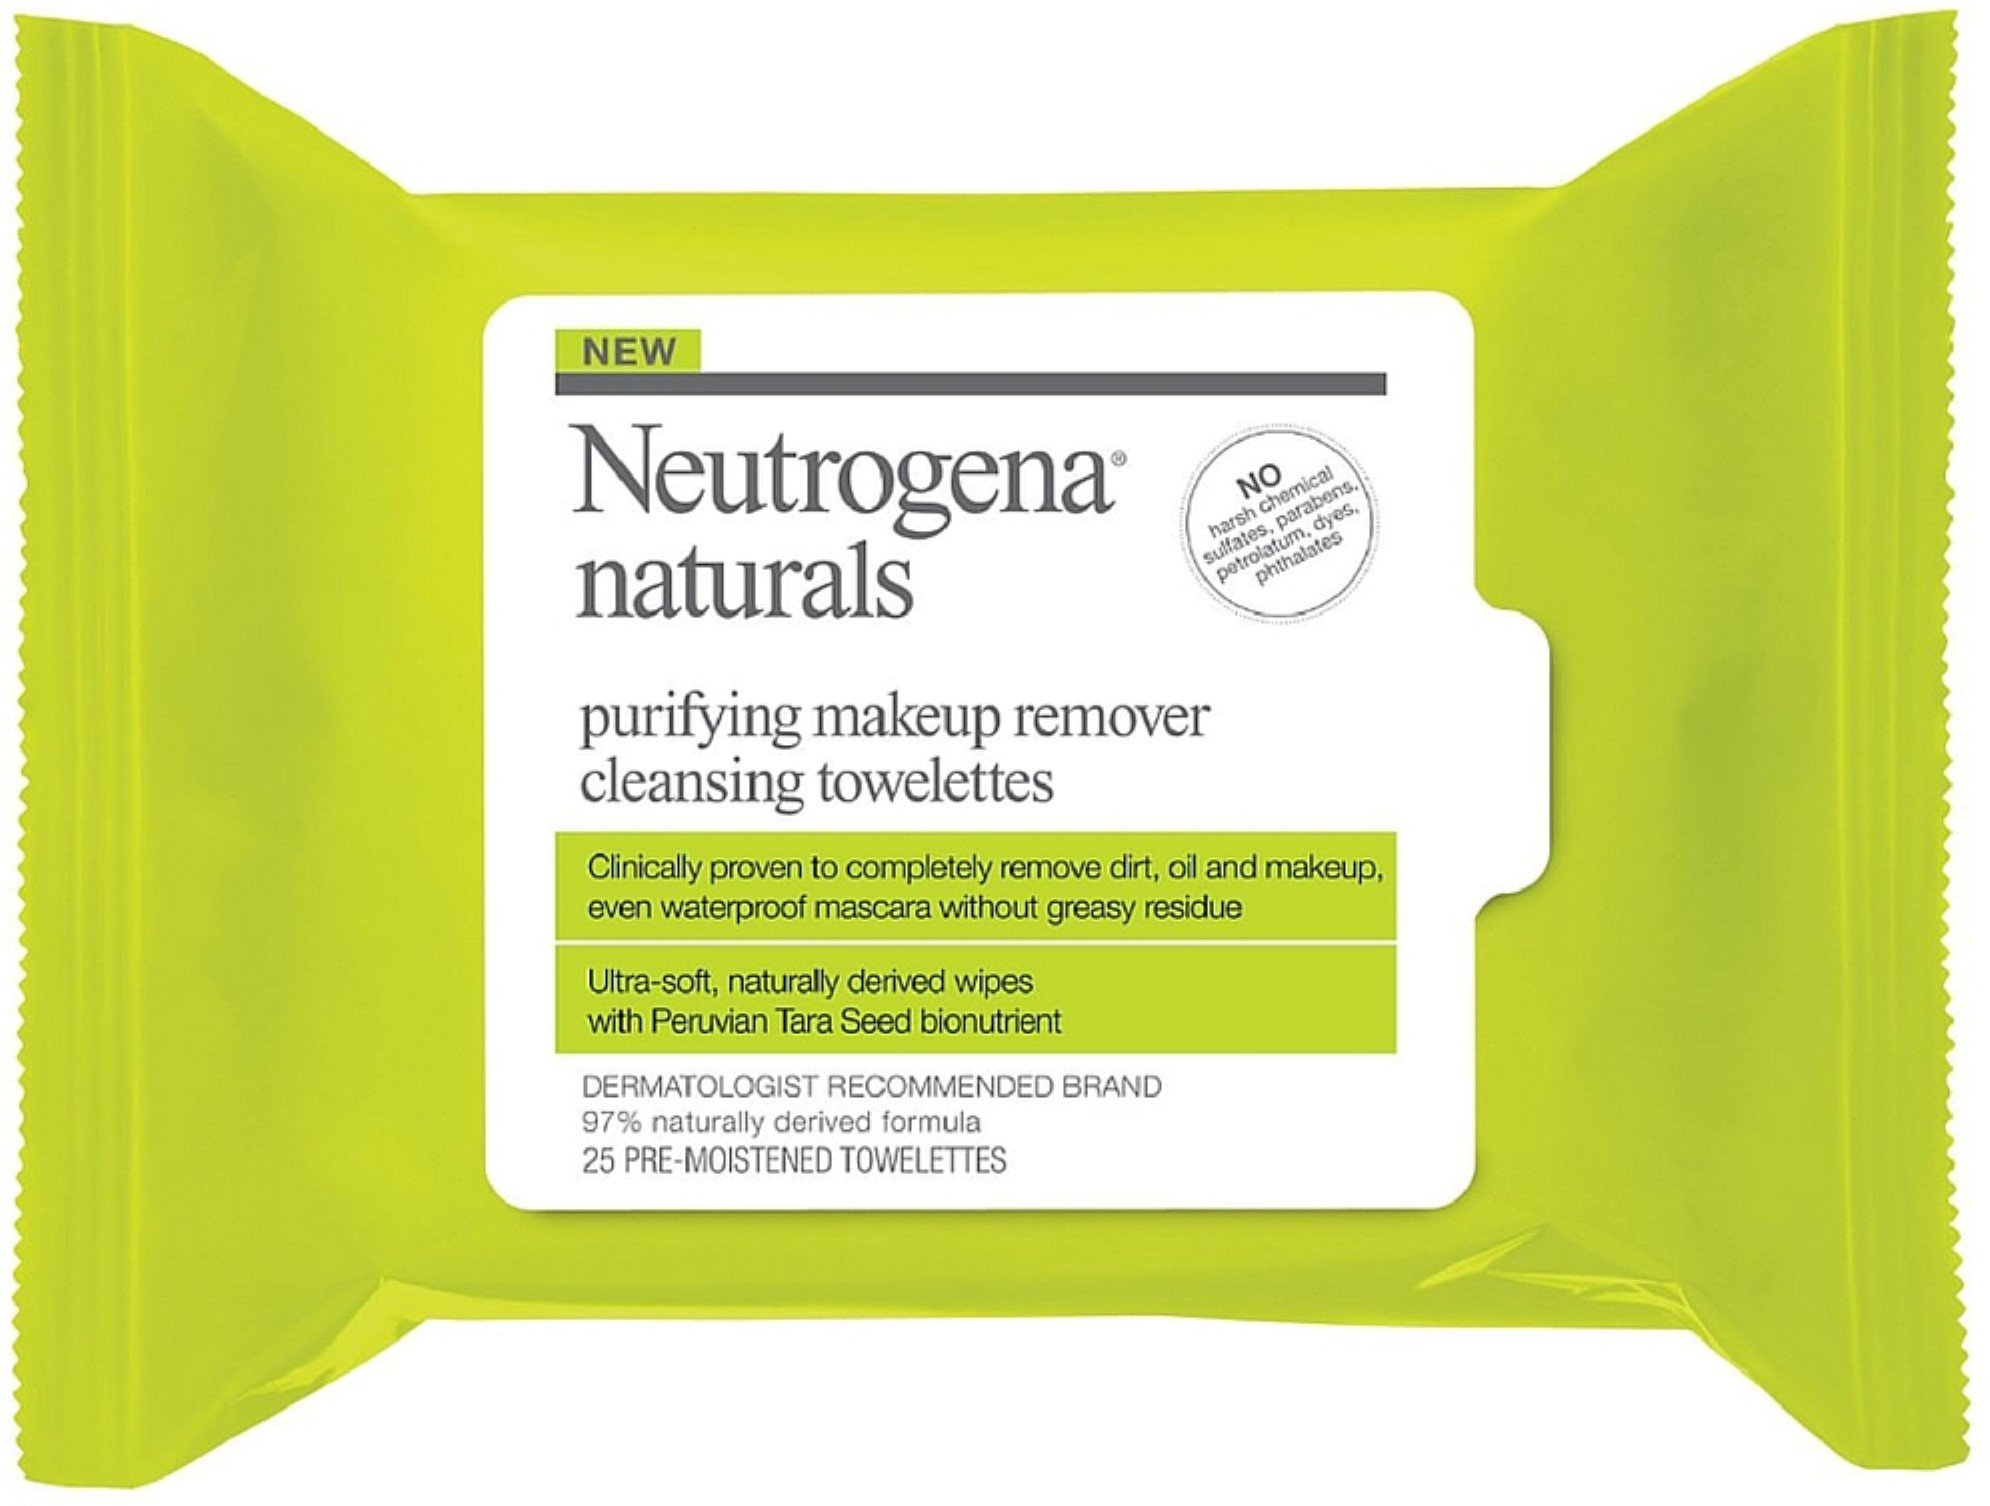 Neutrogena Naturals Purifying Makeup Remover Cleansing Towelettes 25 ea (Pack of 6)